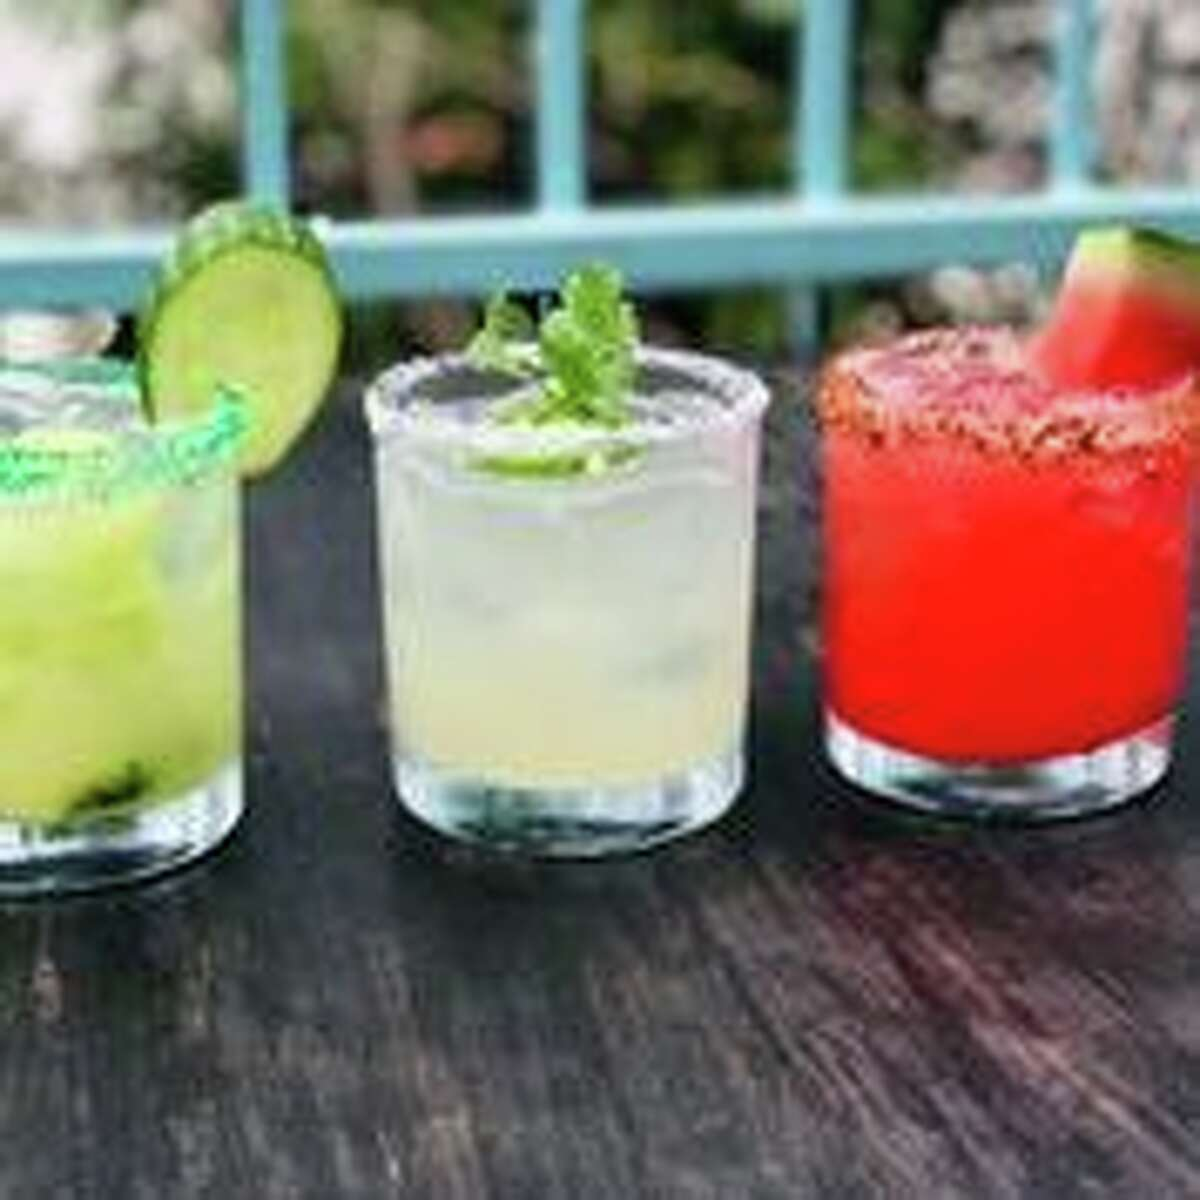 The Original Ninfa's on Navigation: Houston's iconic Tex-Mex restaurant wil offer a Red, White and Green margarita trio for $12 Sunday (watermelon, cucumbo and jalapeno flavors). Other tequila cocktails and margaritas will be available throughout the day. 2704 Navigation; ninfas.com